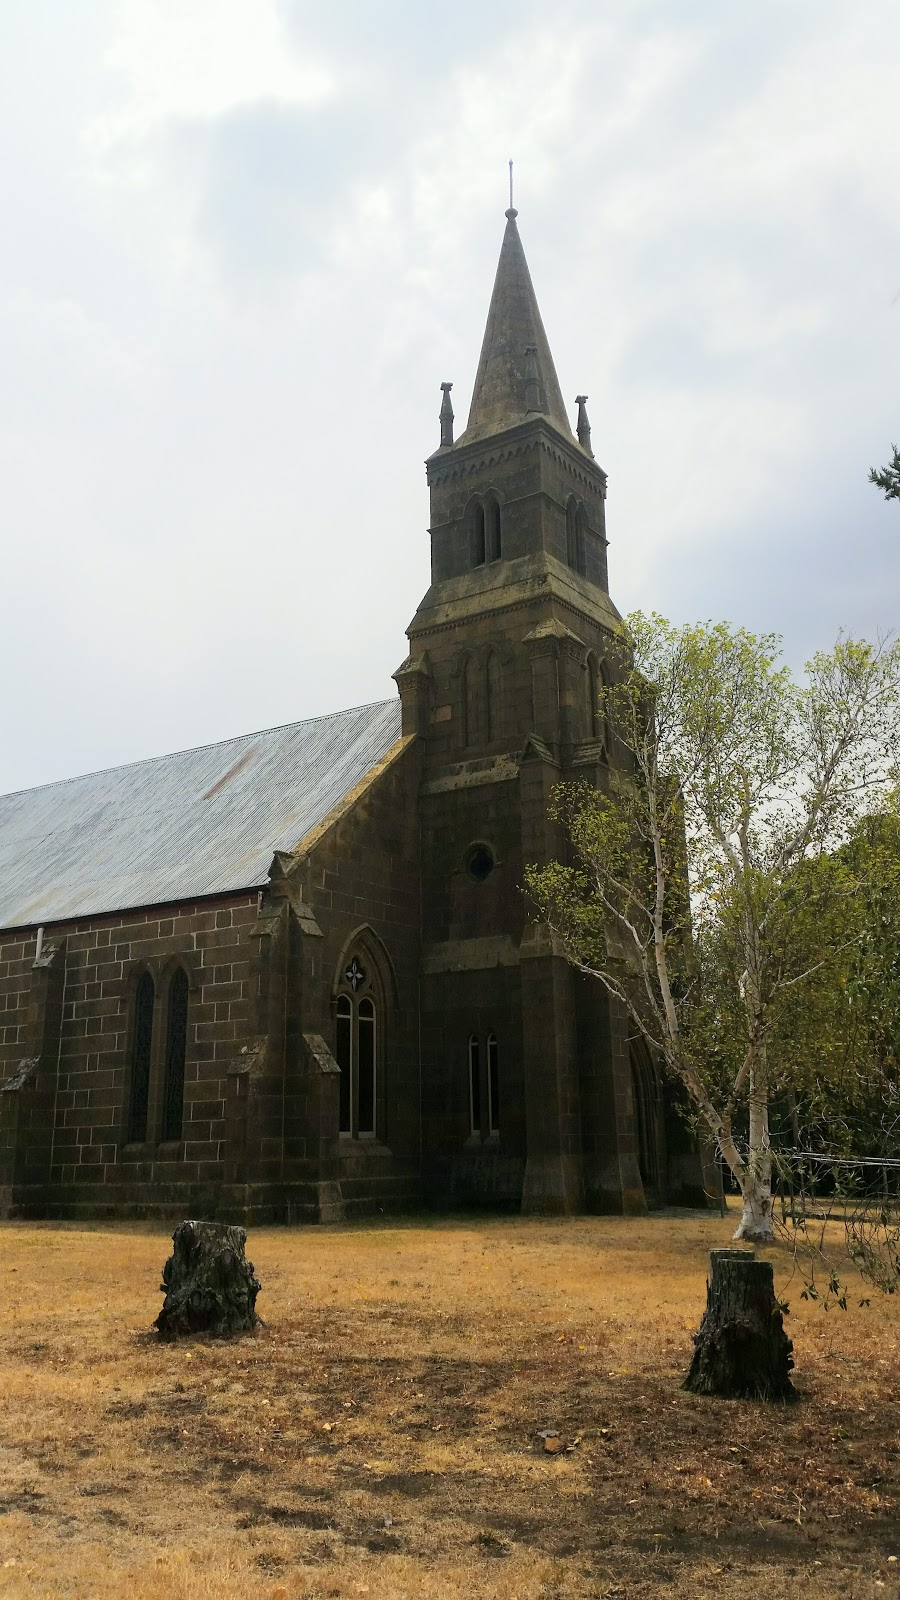 Oatlands Uniting Church | church | 32 High St, Oatlands TAS 7120, Australia